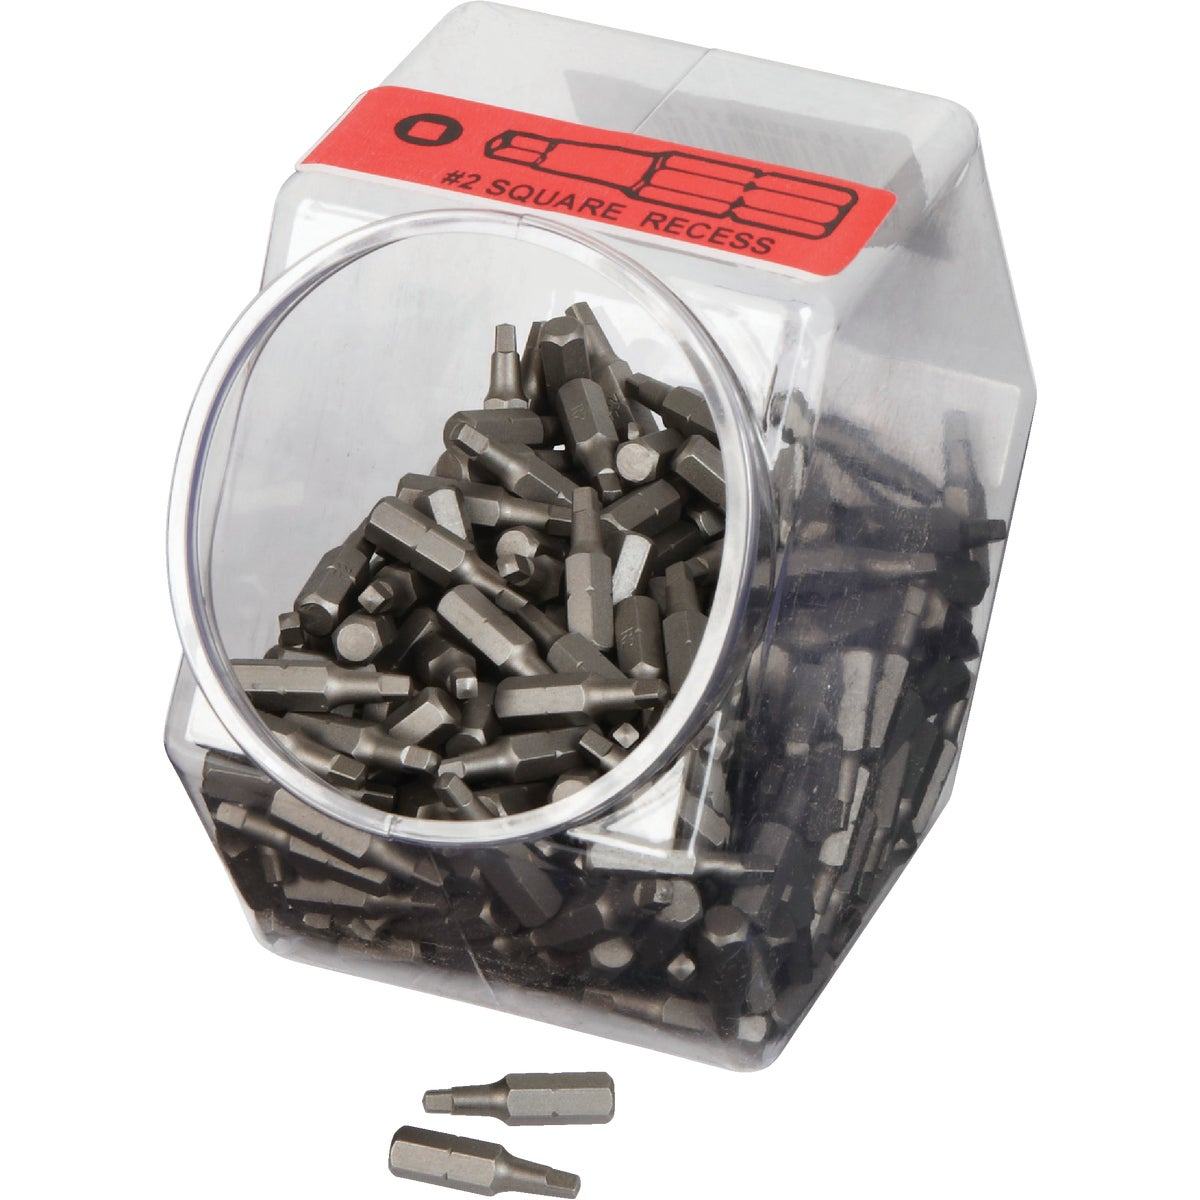 #2 Sq Recess Screw Bits